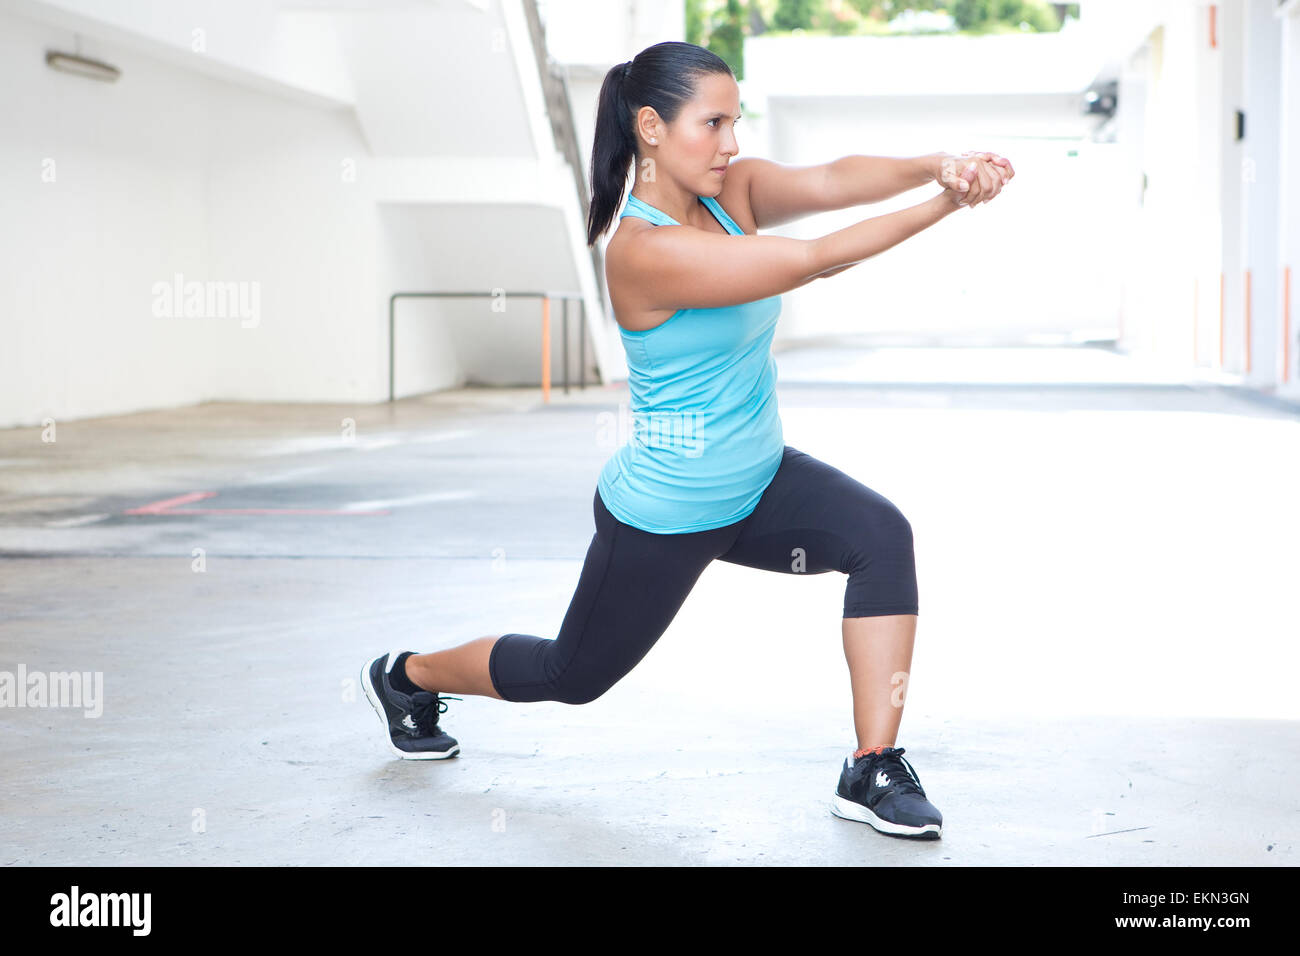 Beautiful hispanic sport woman demonstrating tai chi stance with pretend sword, outdoor. Concept of healthy lifestyle. - Stock Image